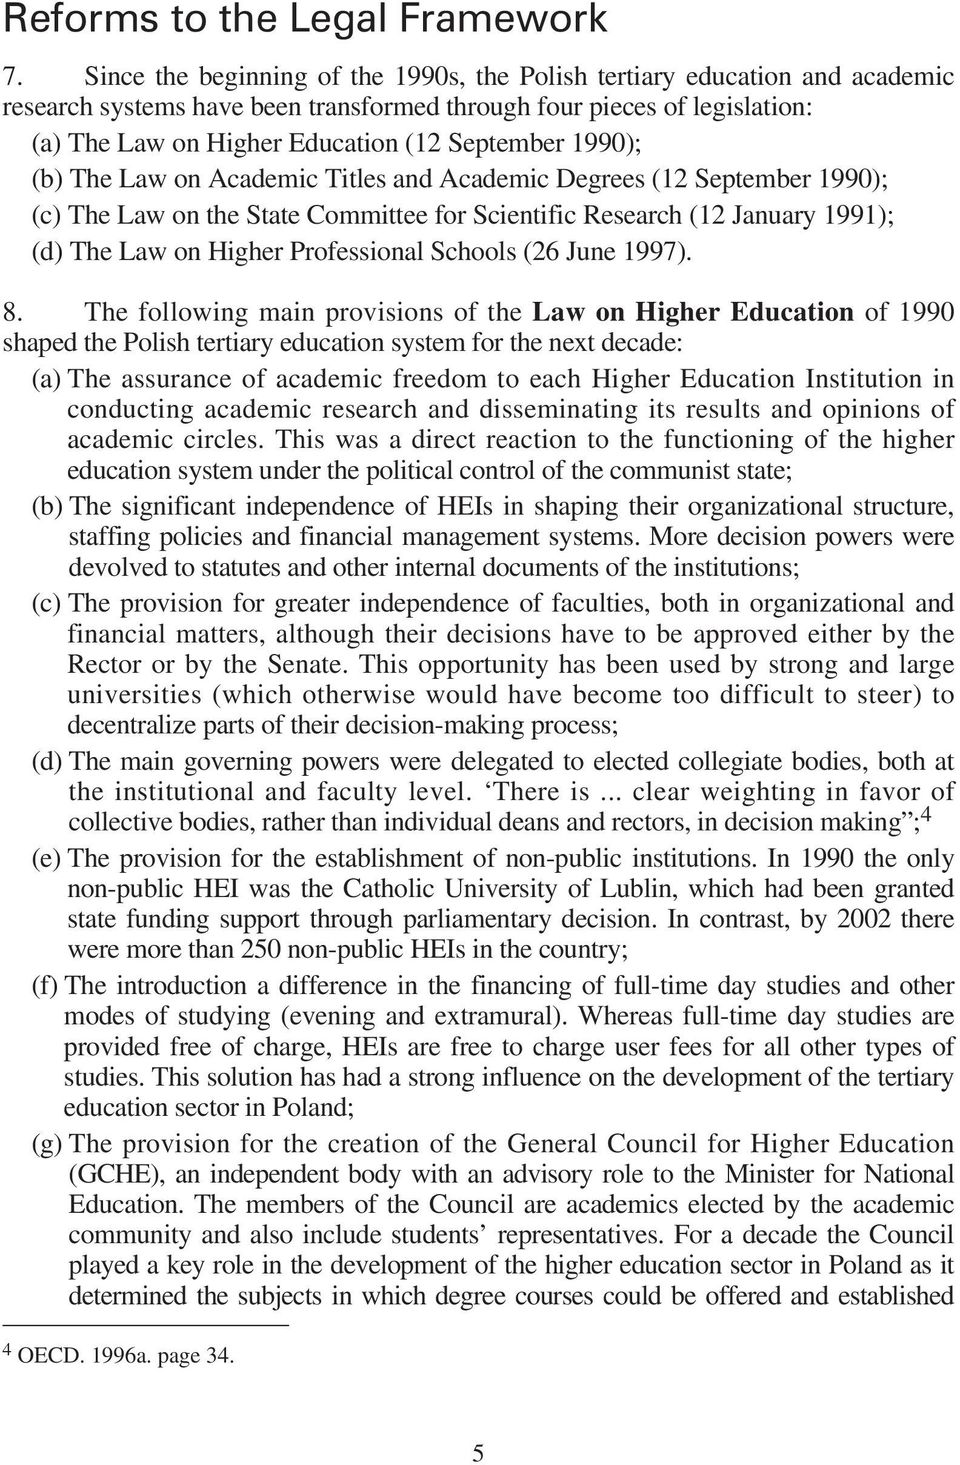 1990); (b) The Law on Academic Titles and Academic Degrees (12 September 1990); (c) The Law on the State Committee for Scientific Research (12 January 1991); (d) The Law on Higher Professional